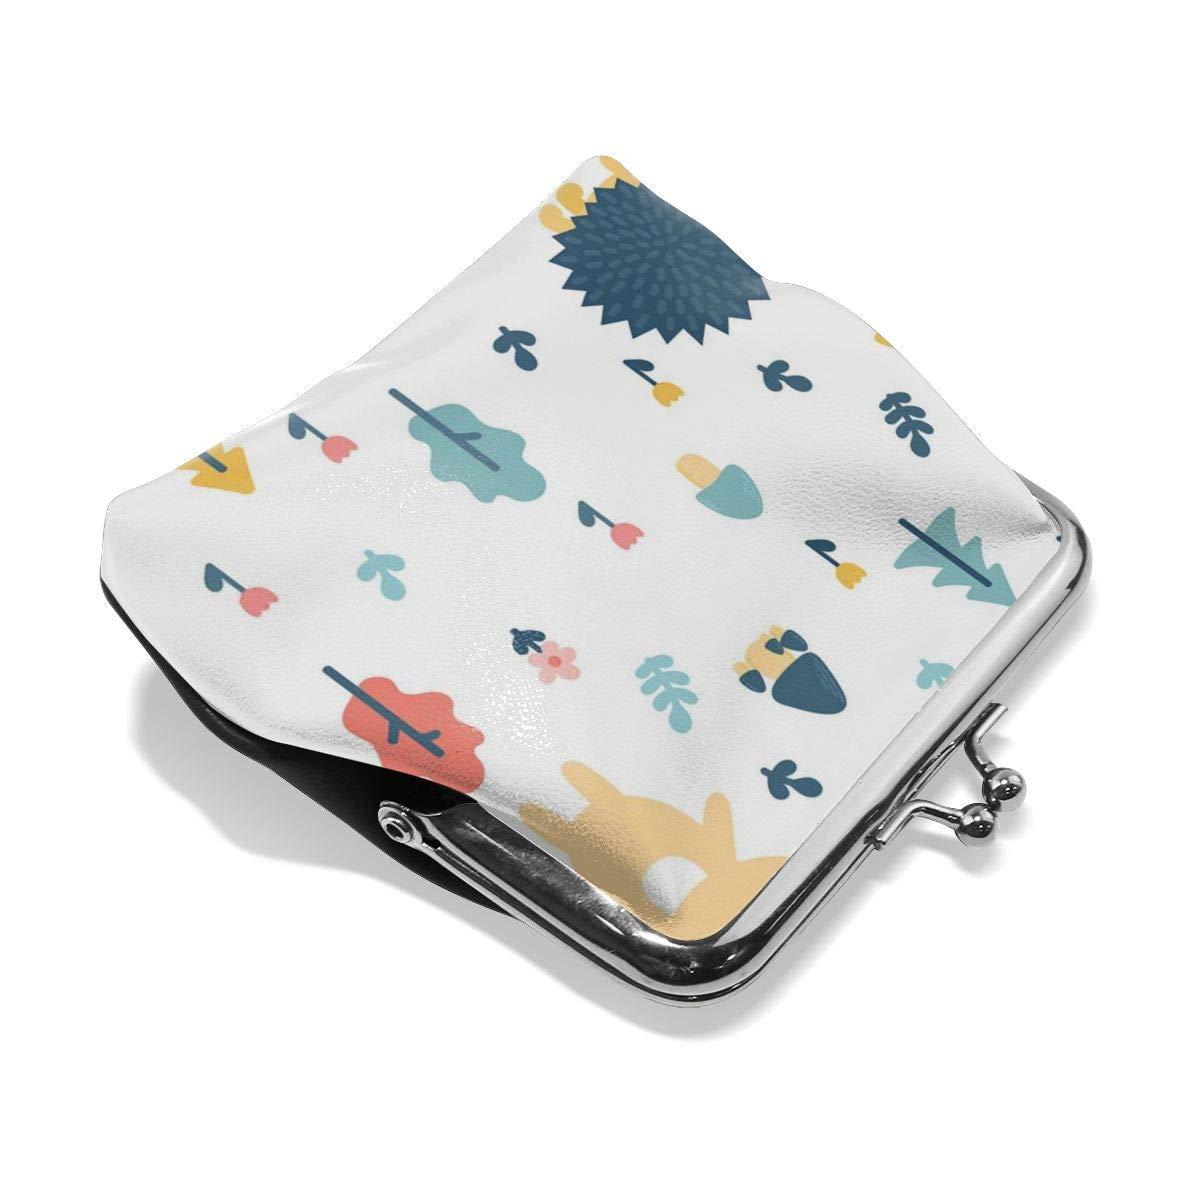 Yunshm Bear Cub Hedgehog And Mushroom Customized Retro Leather Cute Classic Floral Coin Purse Clutch Pouch Wallet For Girls And Womens